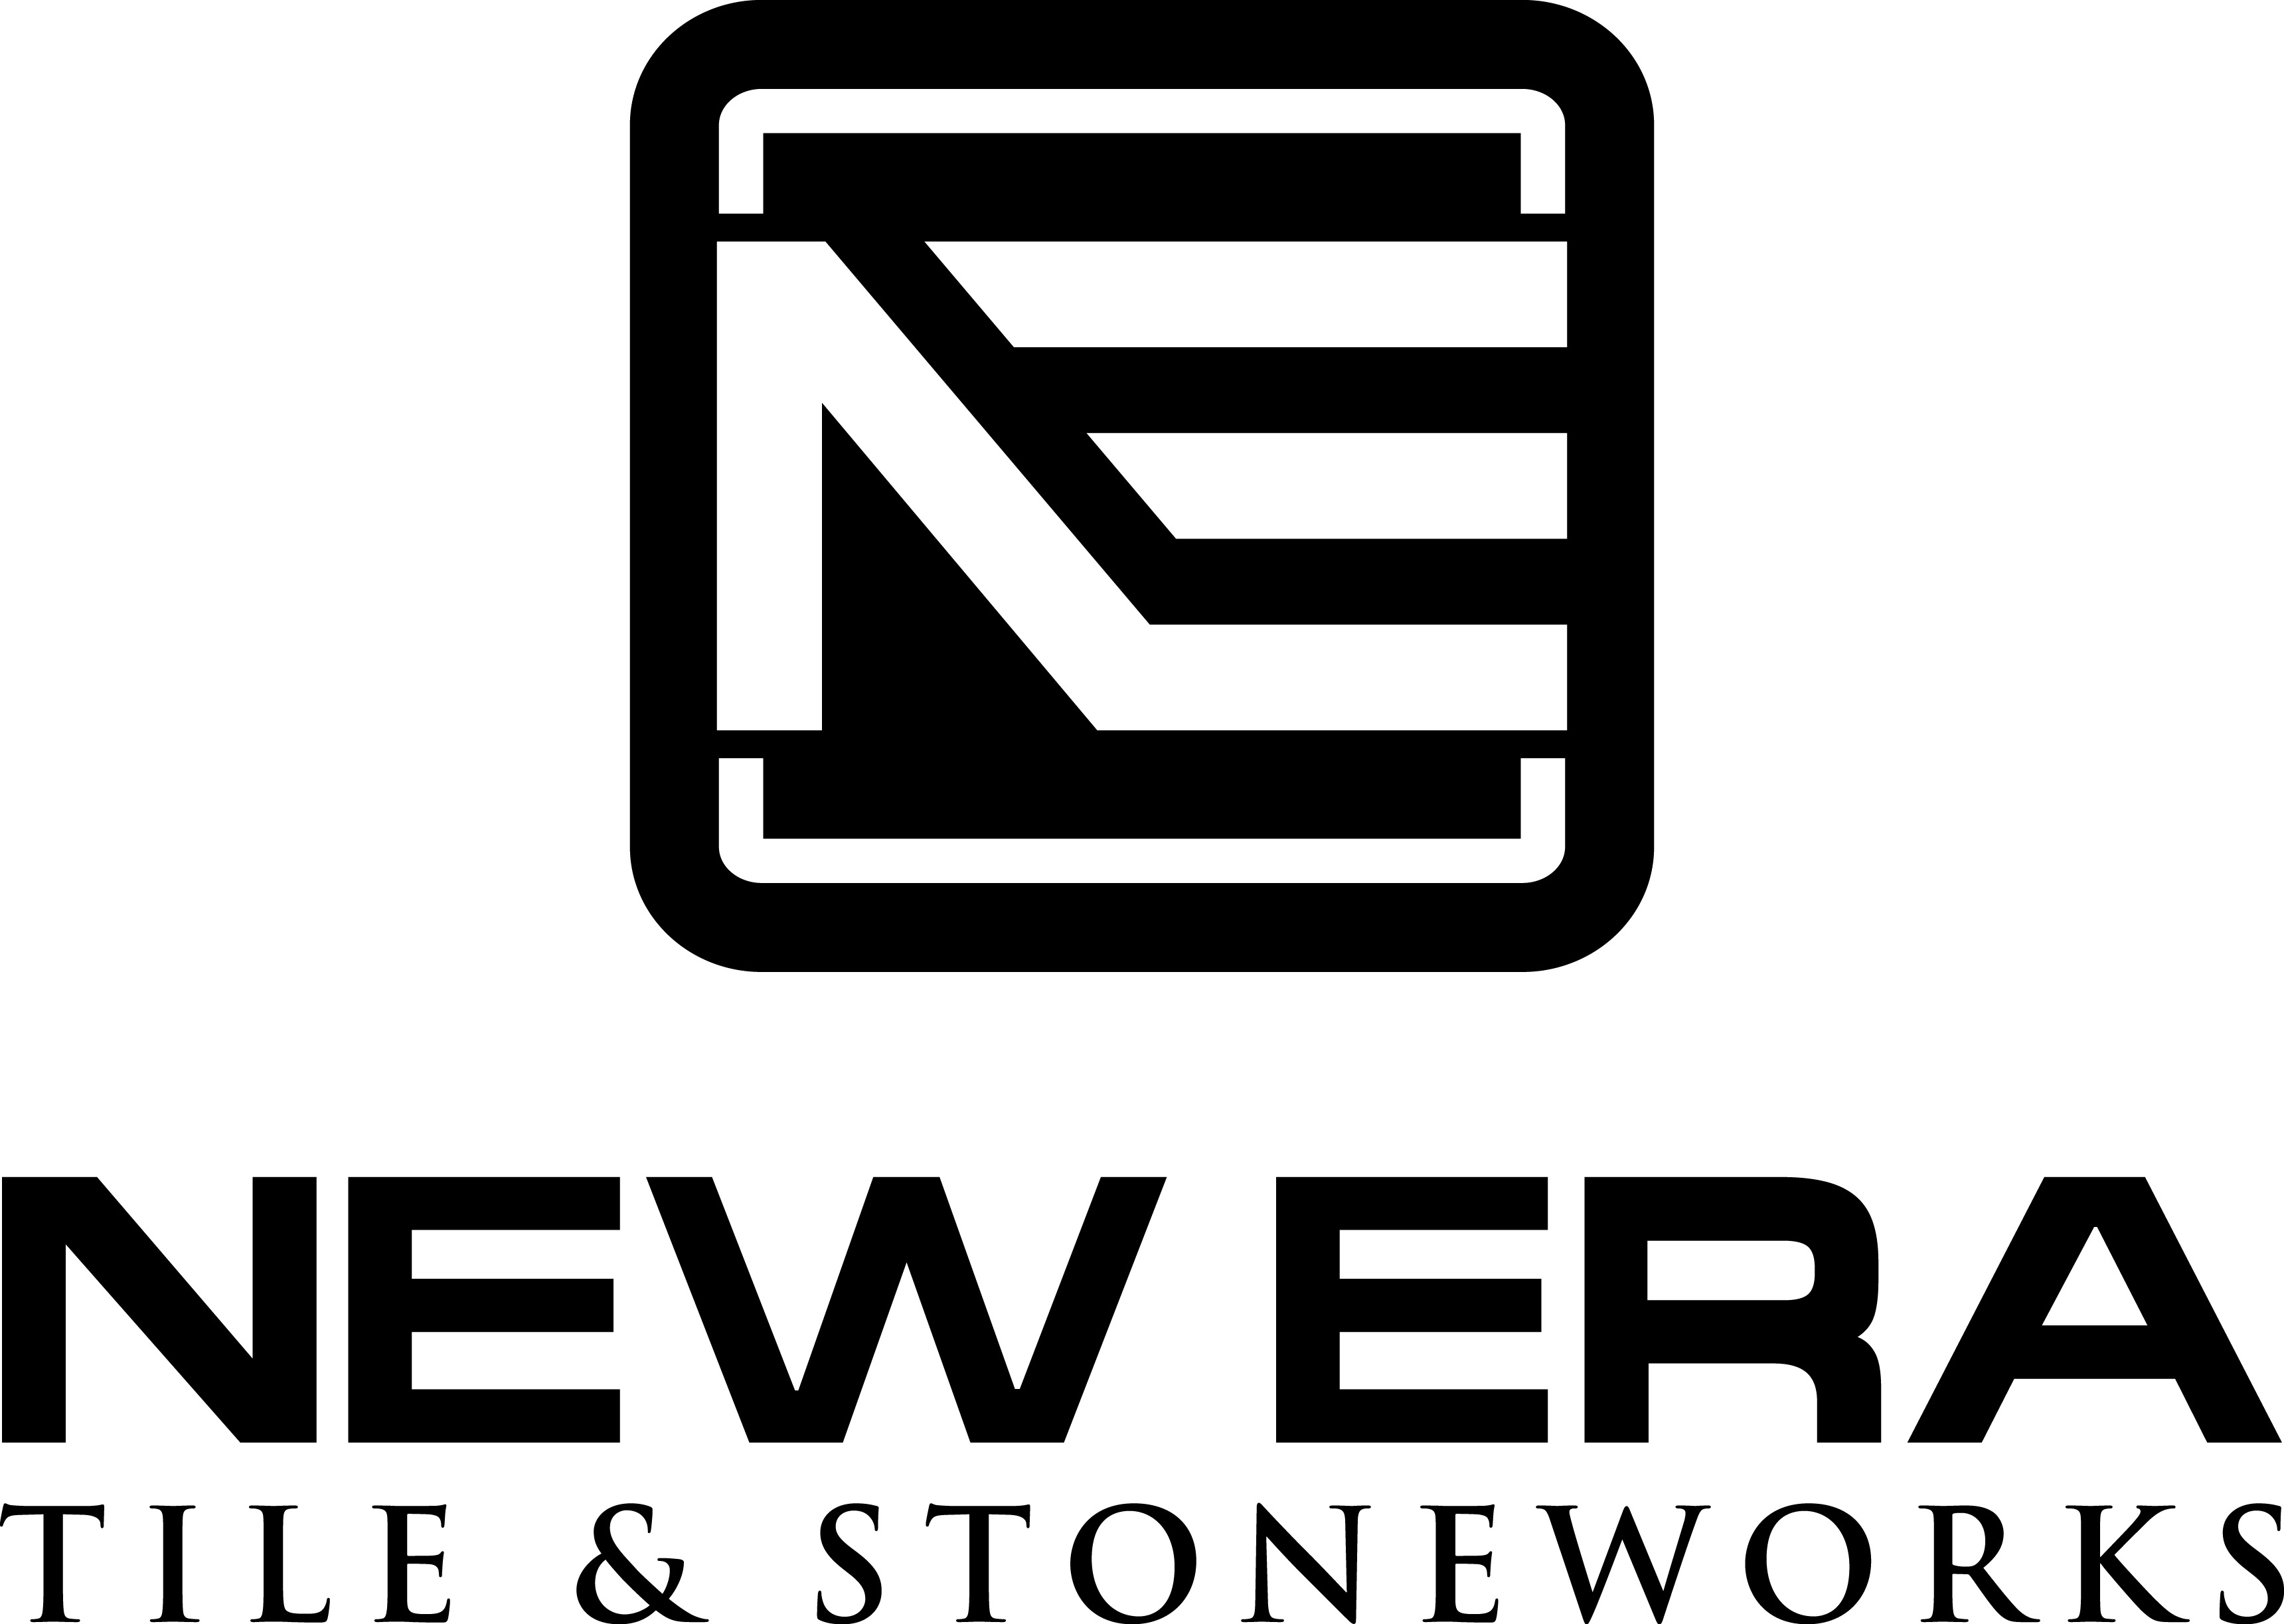 New Era Tile & StoneWorks